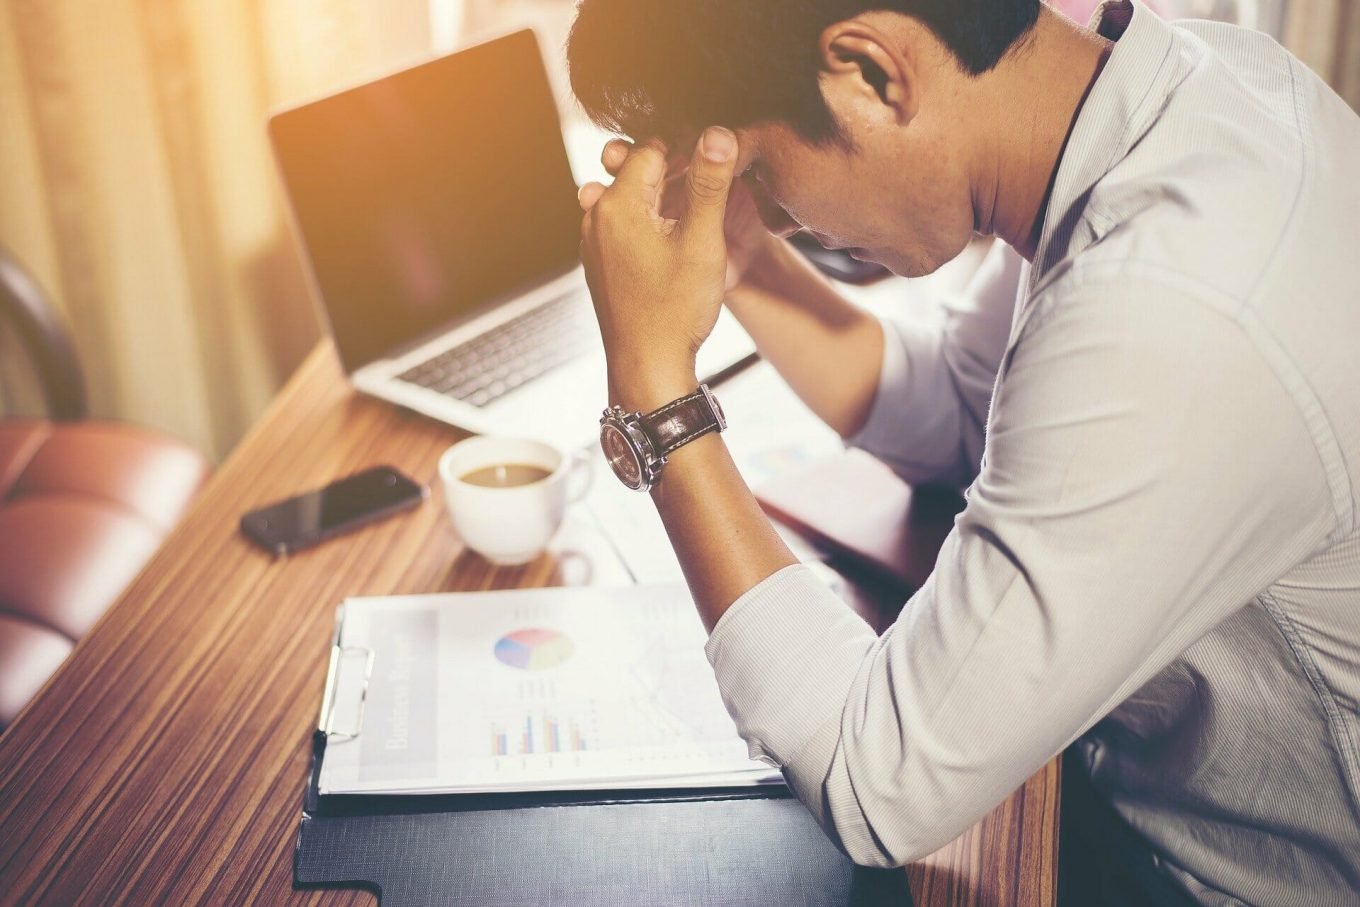 Millenials Struggling The Most With Workplace Stresses